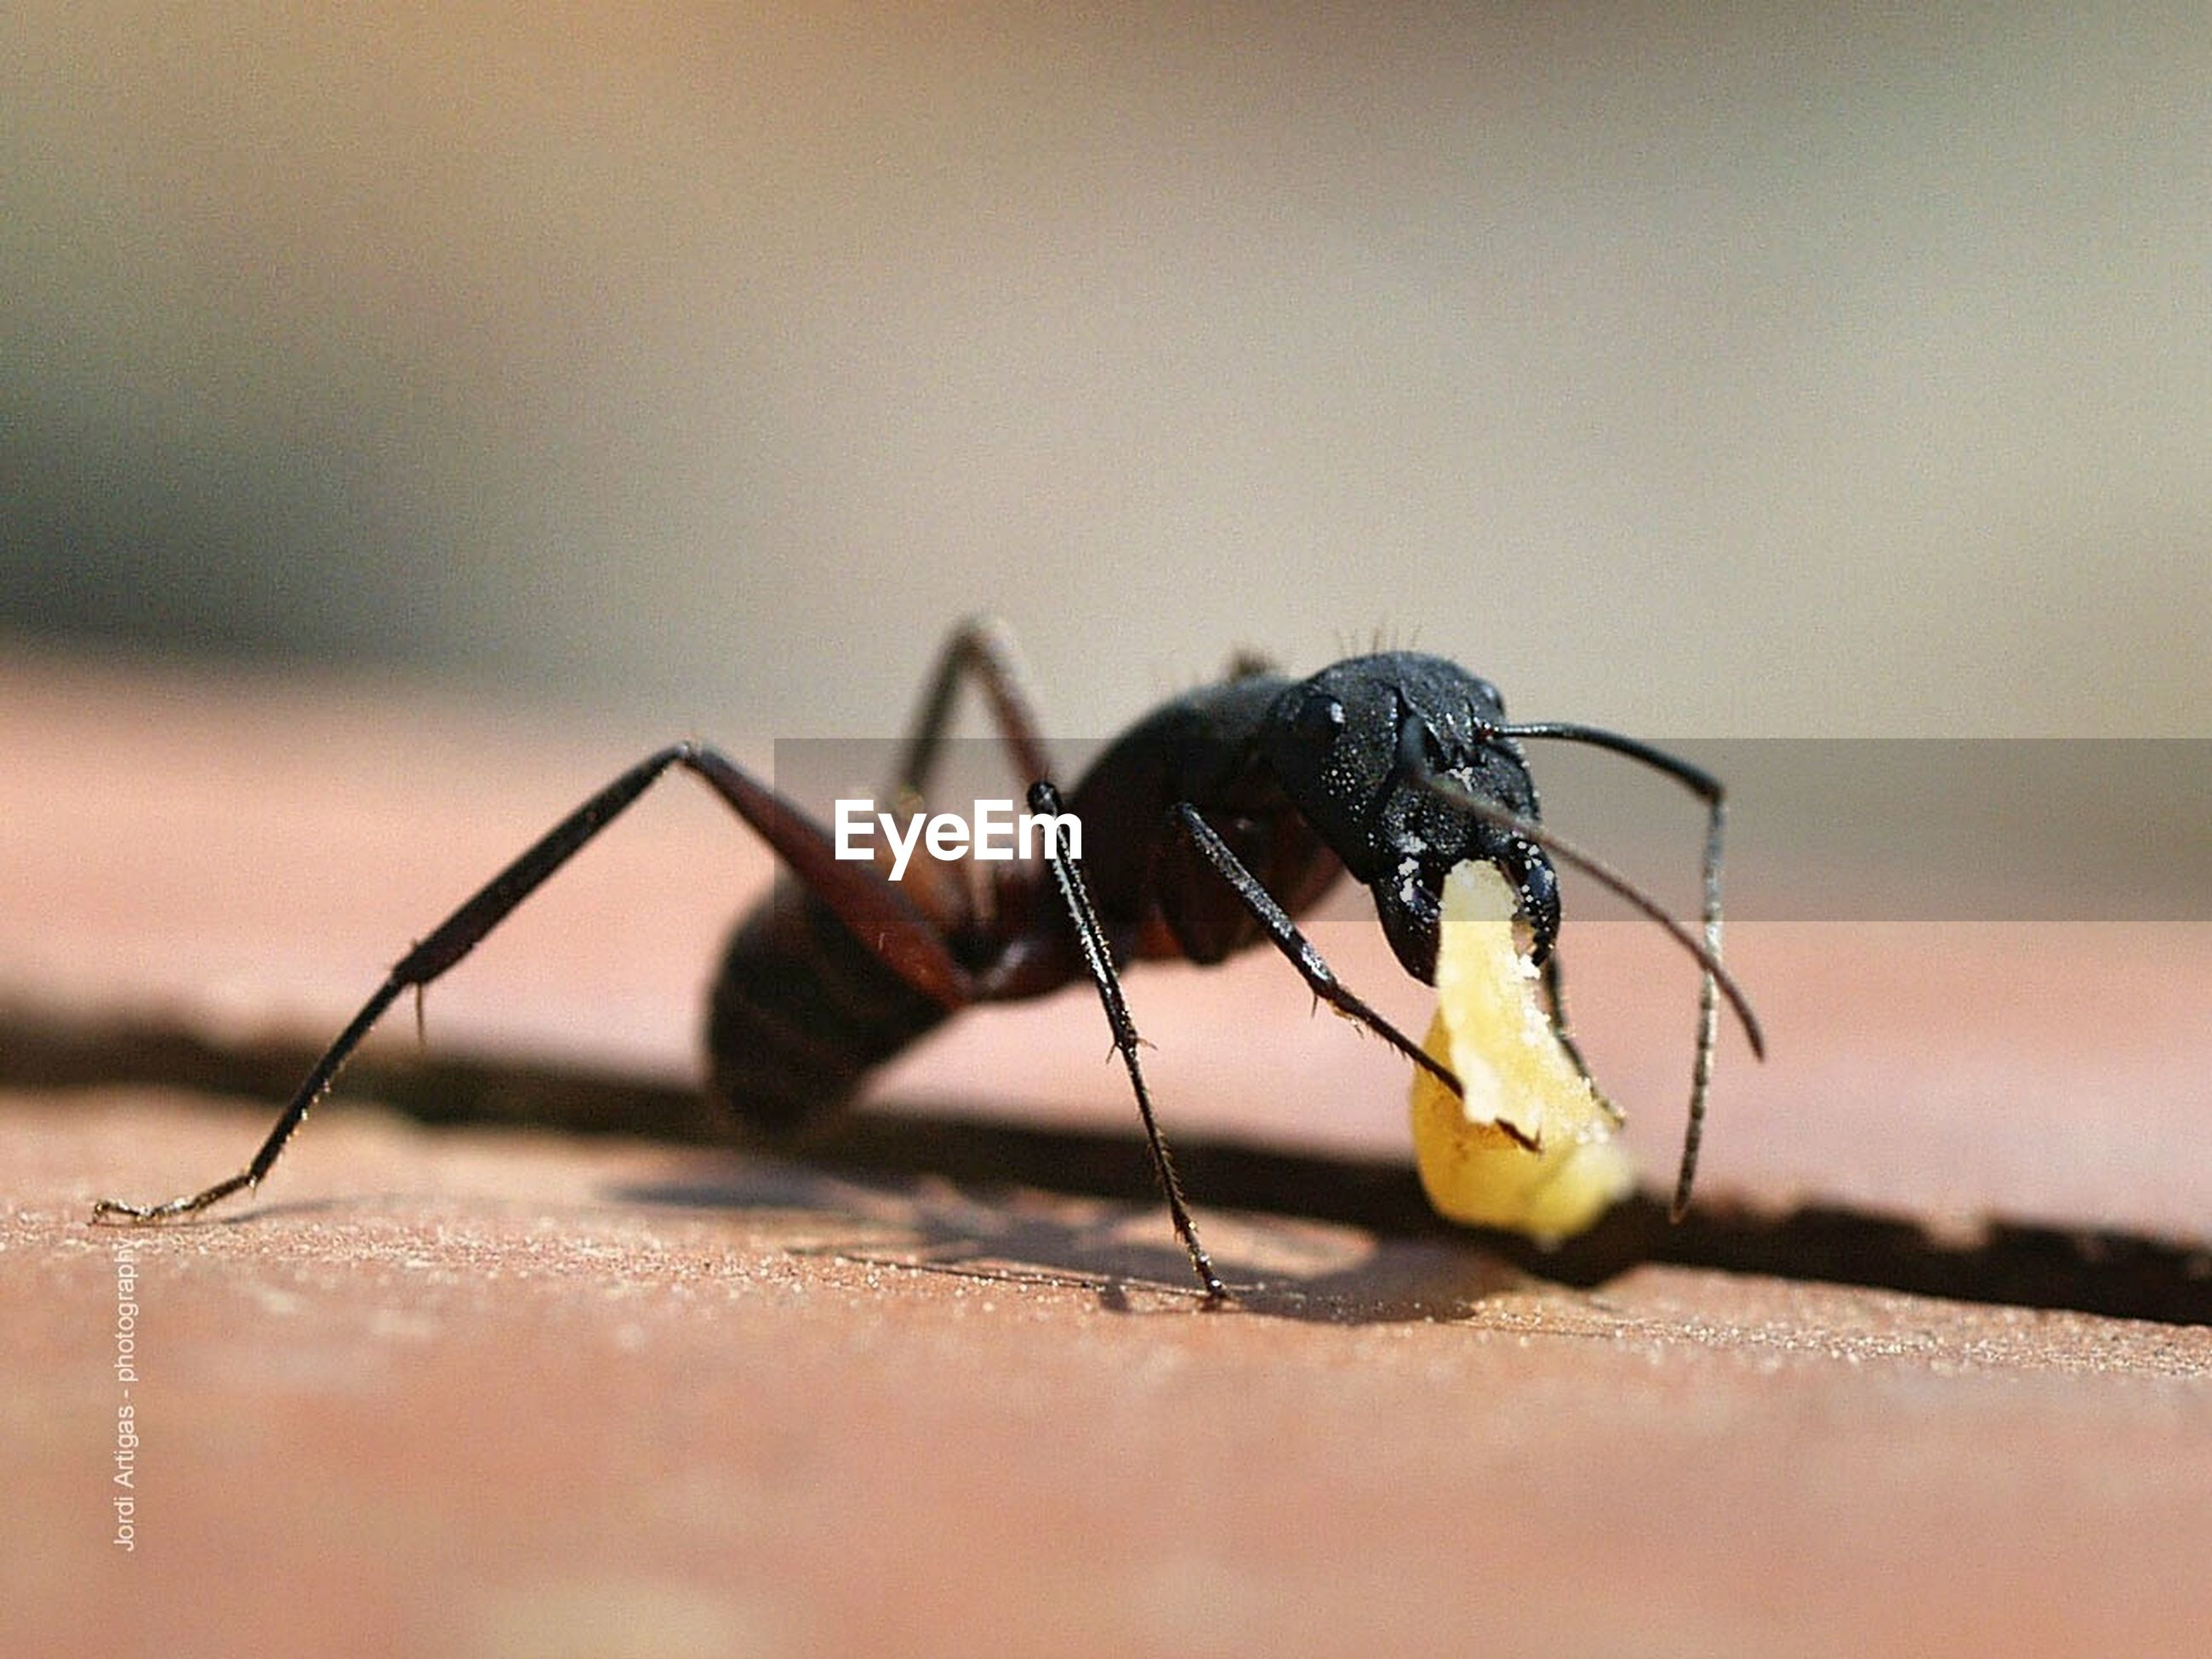 one animal, animal themes, insect, animals in the wild, close-up, wildlife, focus on foreground, animal antenna, selective focus, metal, outdoors, day, no people, nature, black color, zoology, sunlight, animal wing, animal markings, grasshopper